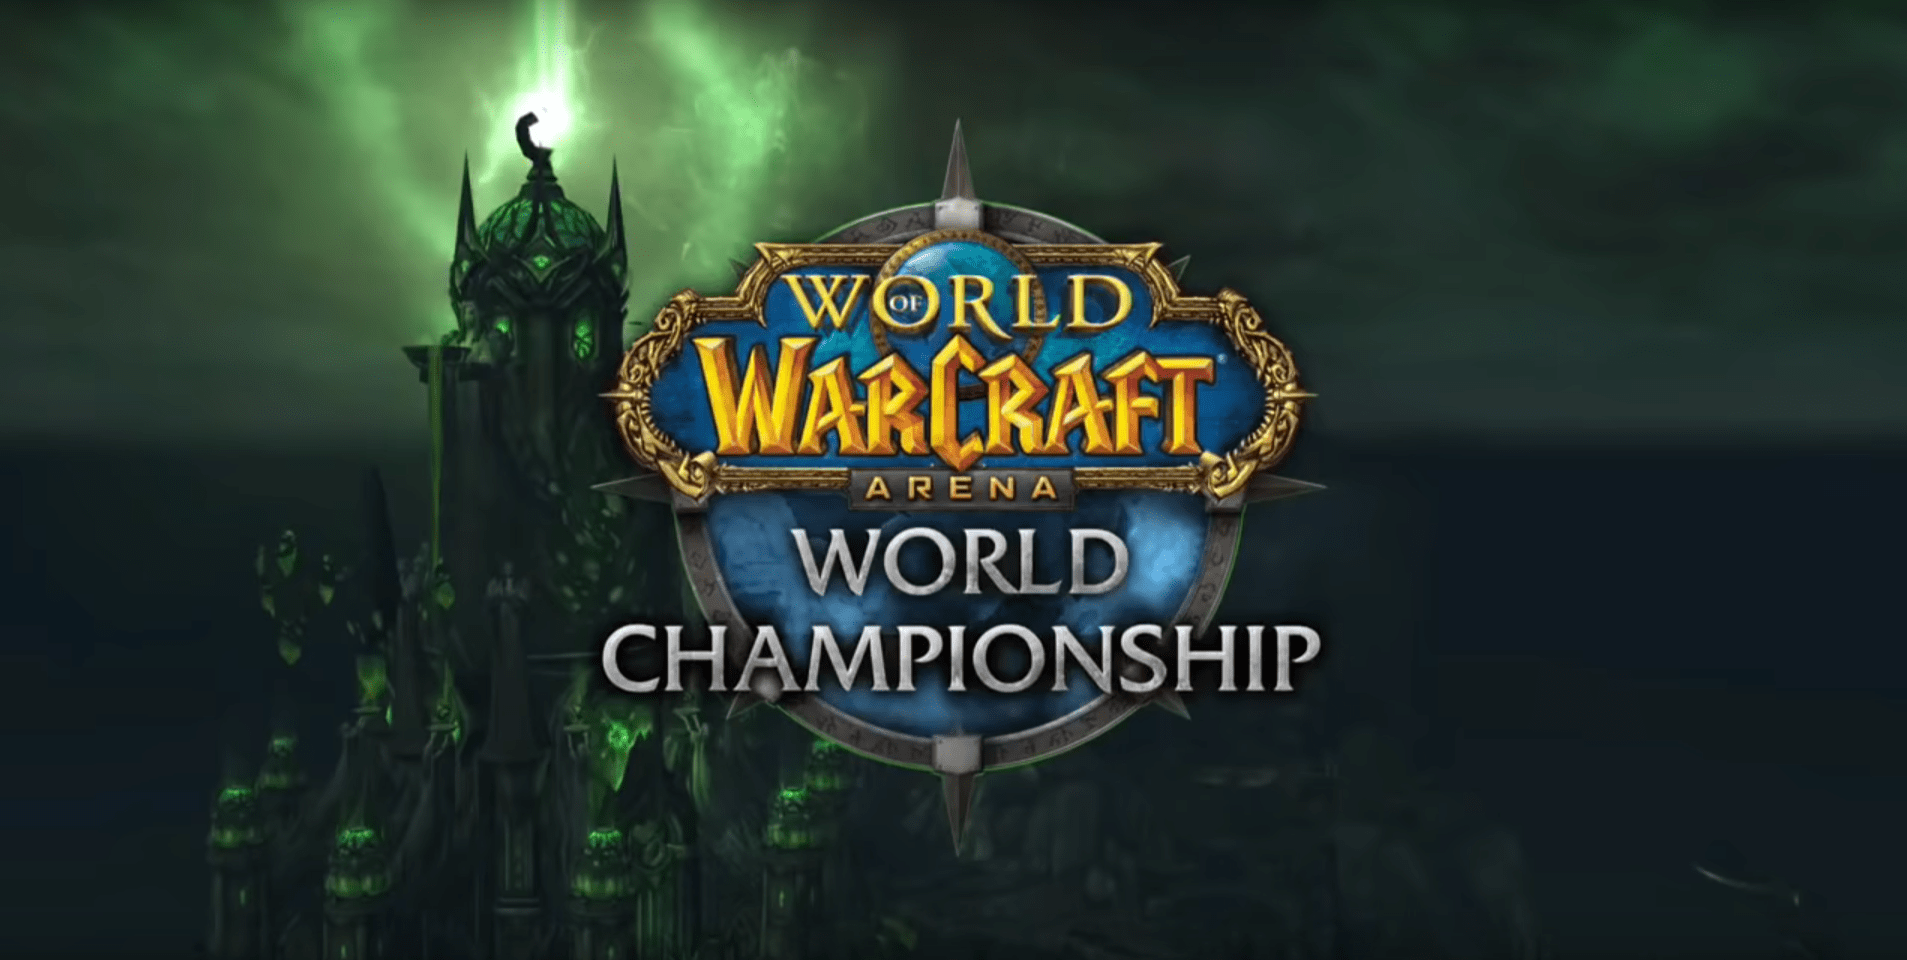 World of Warcraft Tournament: Arena World Championship Global Finals Starts Tomorrow, One Day Before Blizzcon